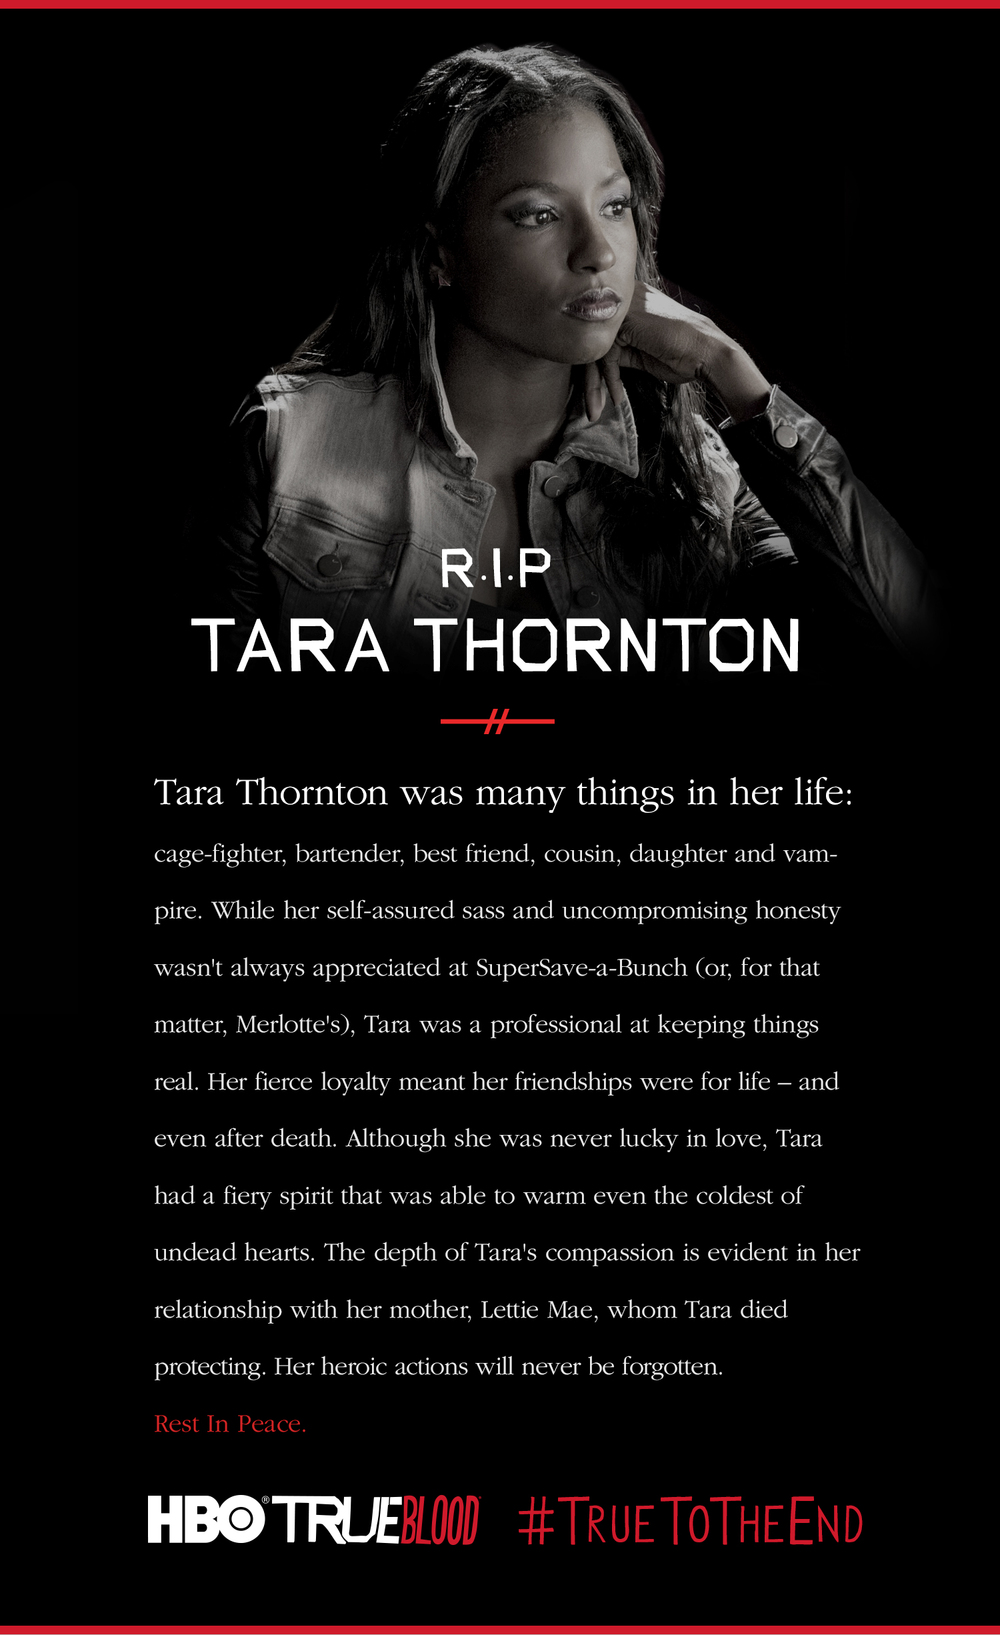 Tara Thornton from Season 7 Episode 1 of True Blood on HBO, as portrayed by Rutina Wesley died a True Death this past Sunday while protecting her mother.